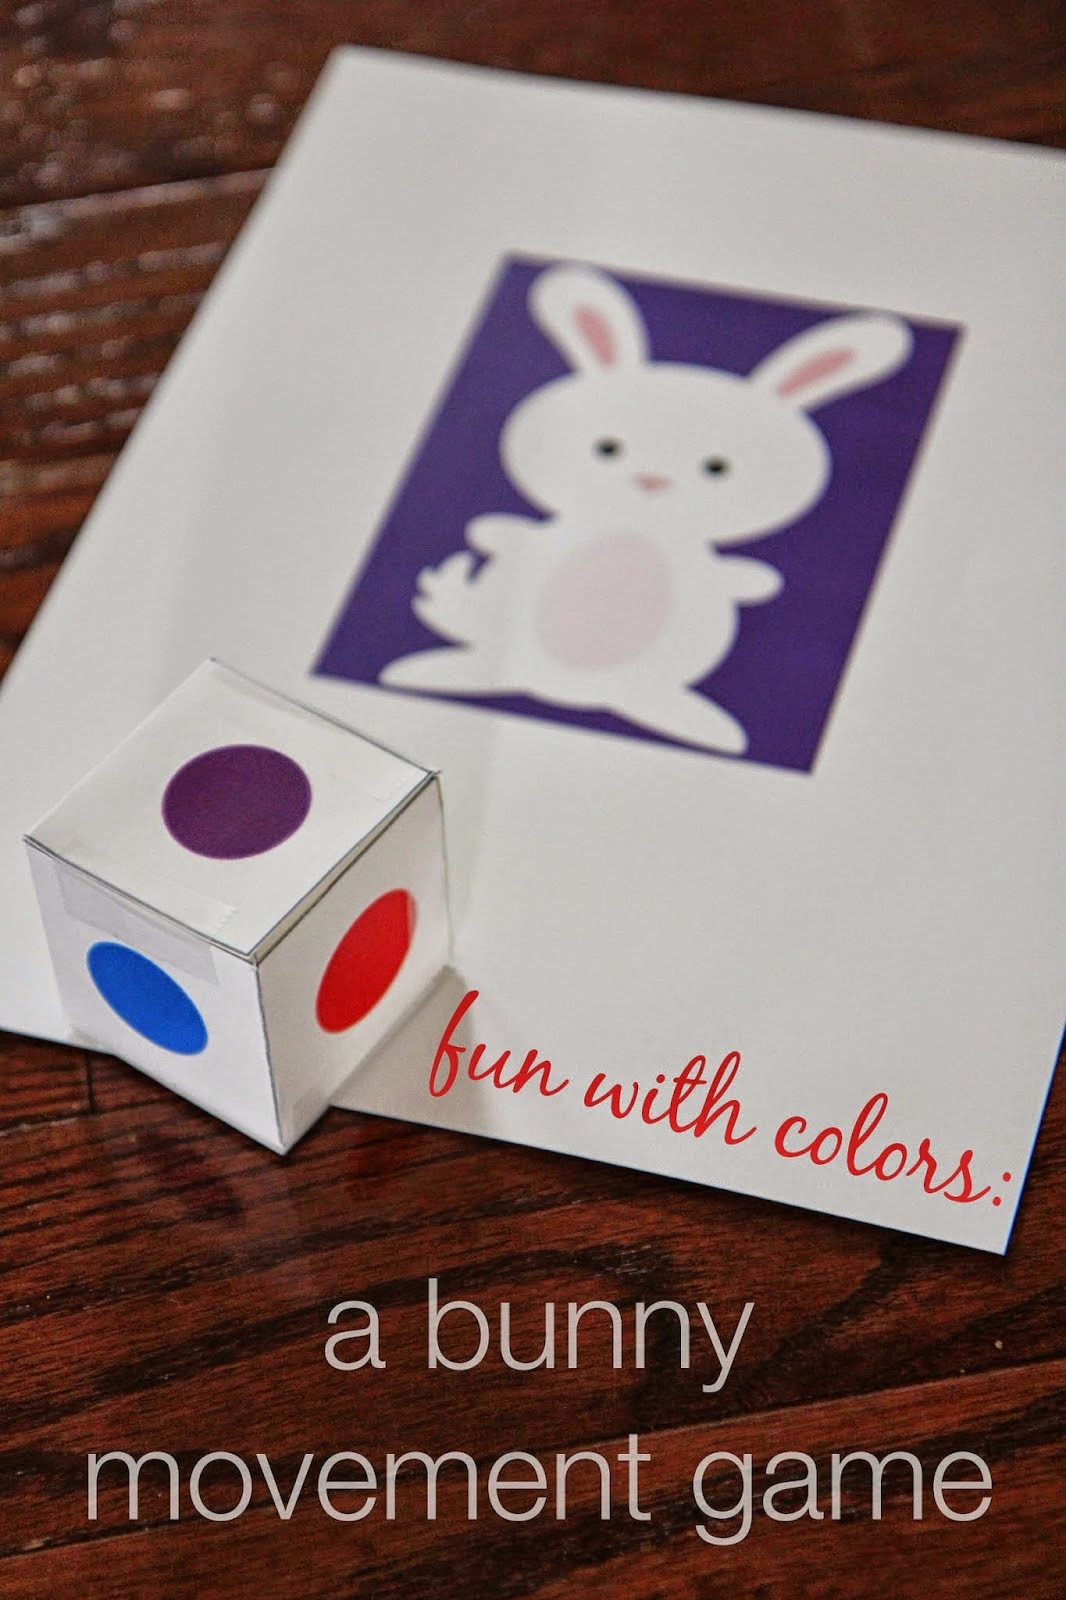 Coloring games for toddlers online - Bunny Movement Game Download Image Color Game Online Toddlers